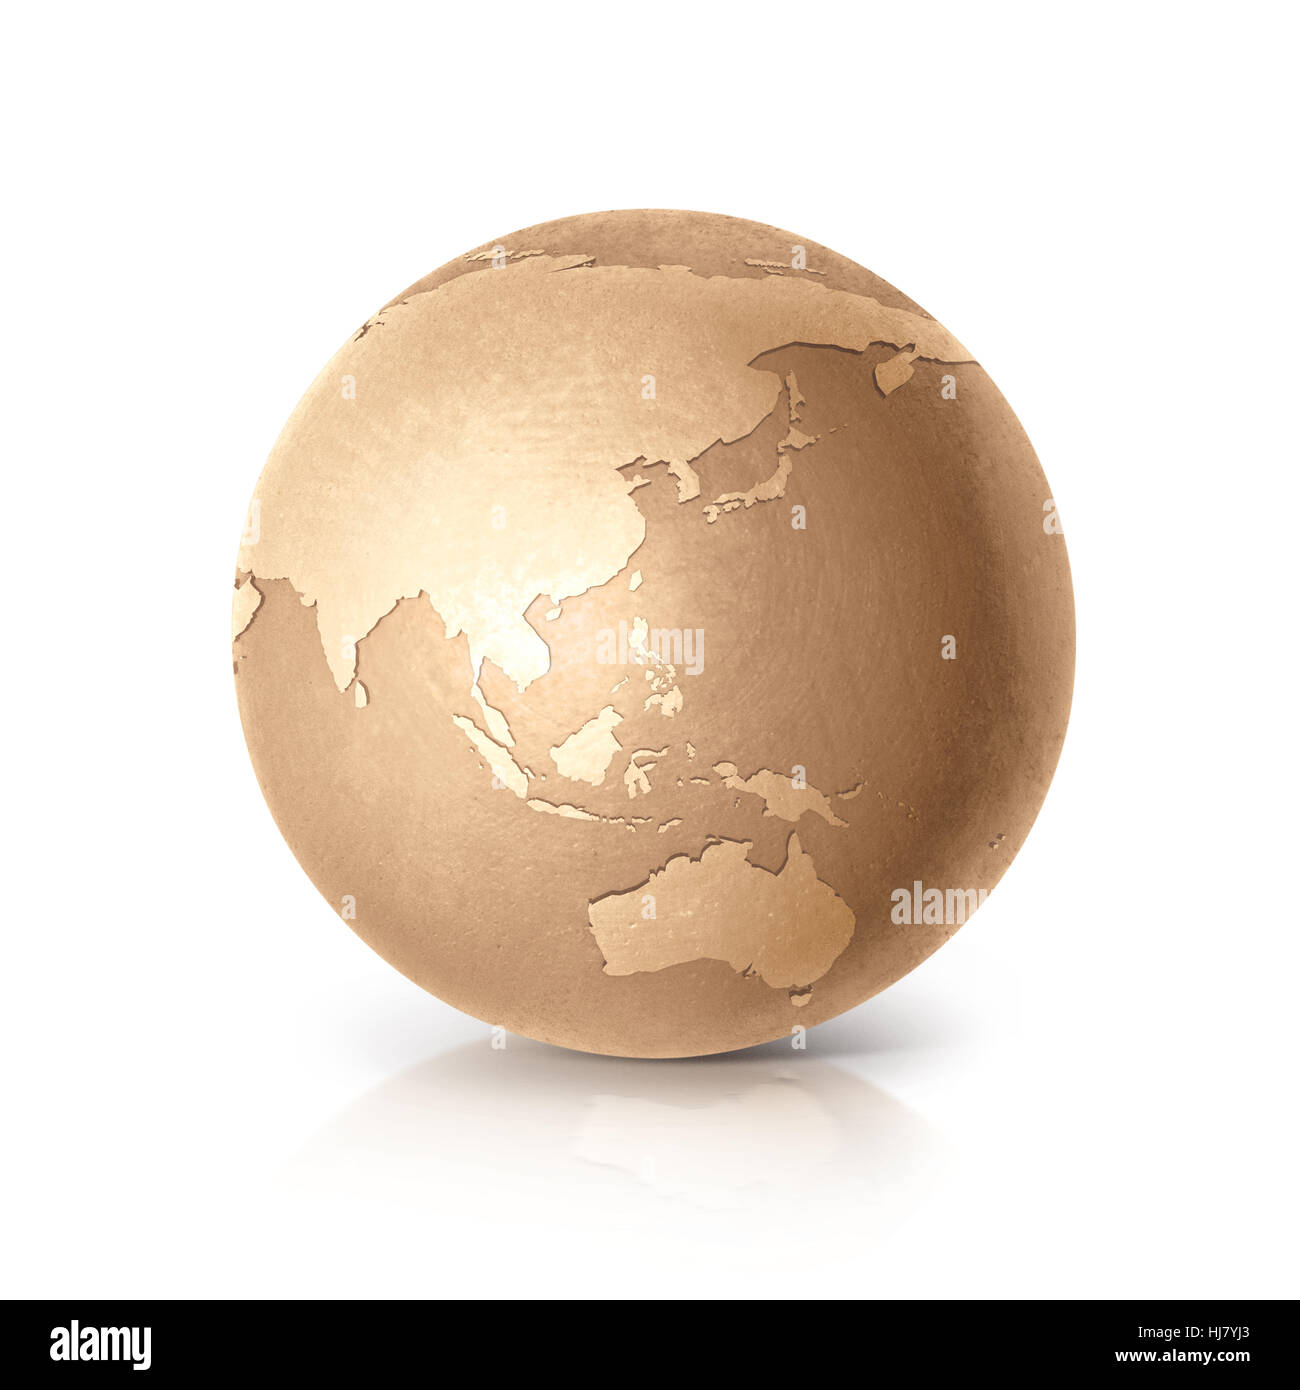 Golden globe 3d illustration asia australia map on white golden globe 3d illustration asia australia map on white background gumiabroncs Image collections